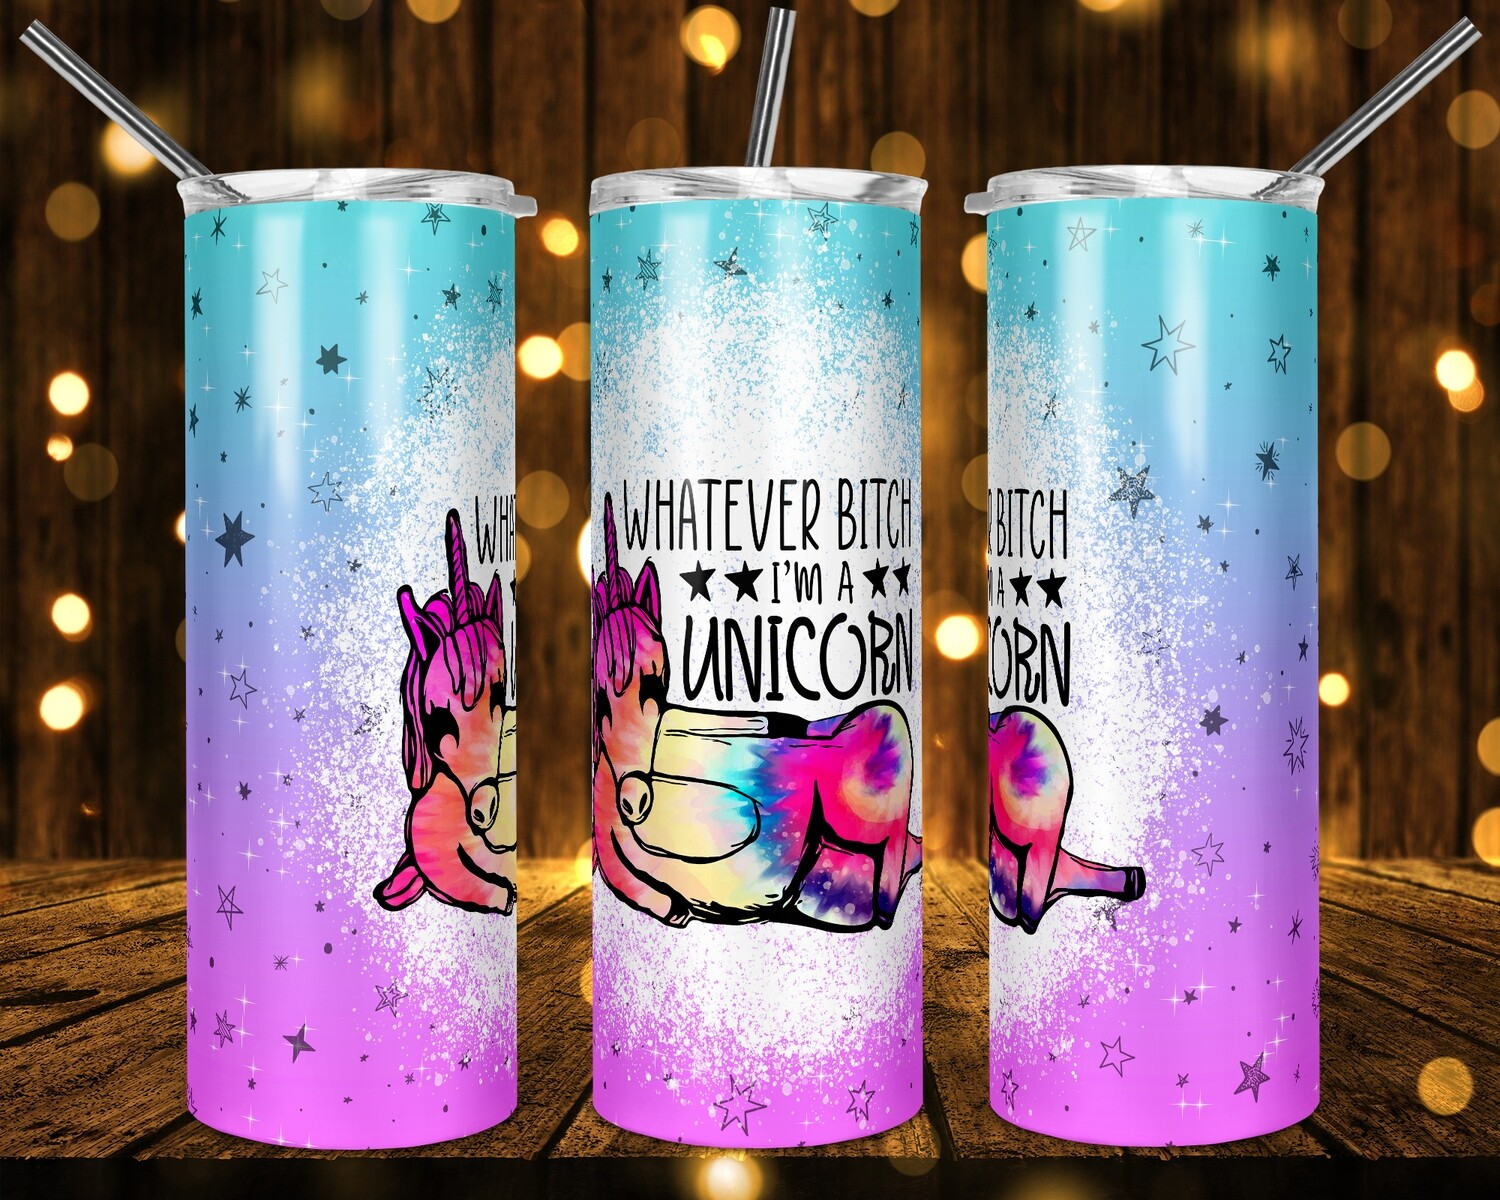 Whatever Bitch I'm a Unicorn - 300 DPI PNG - Sublimation / Waterslide